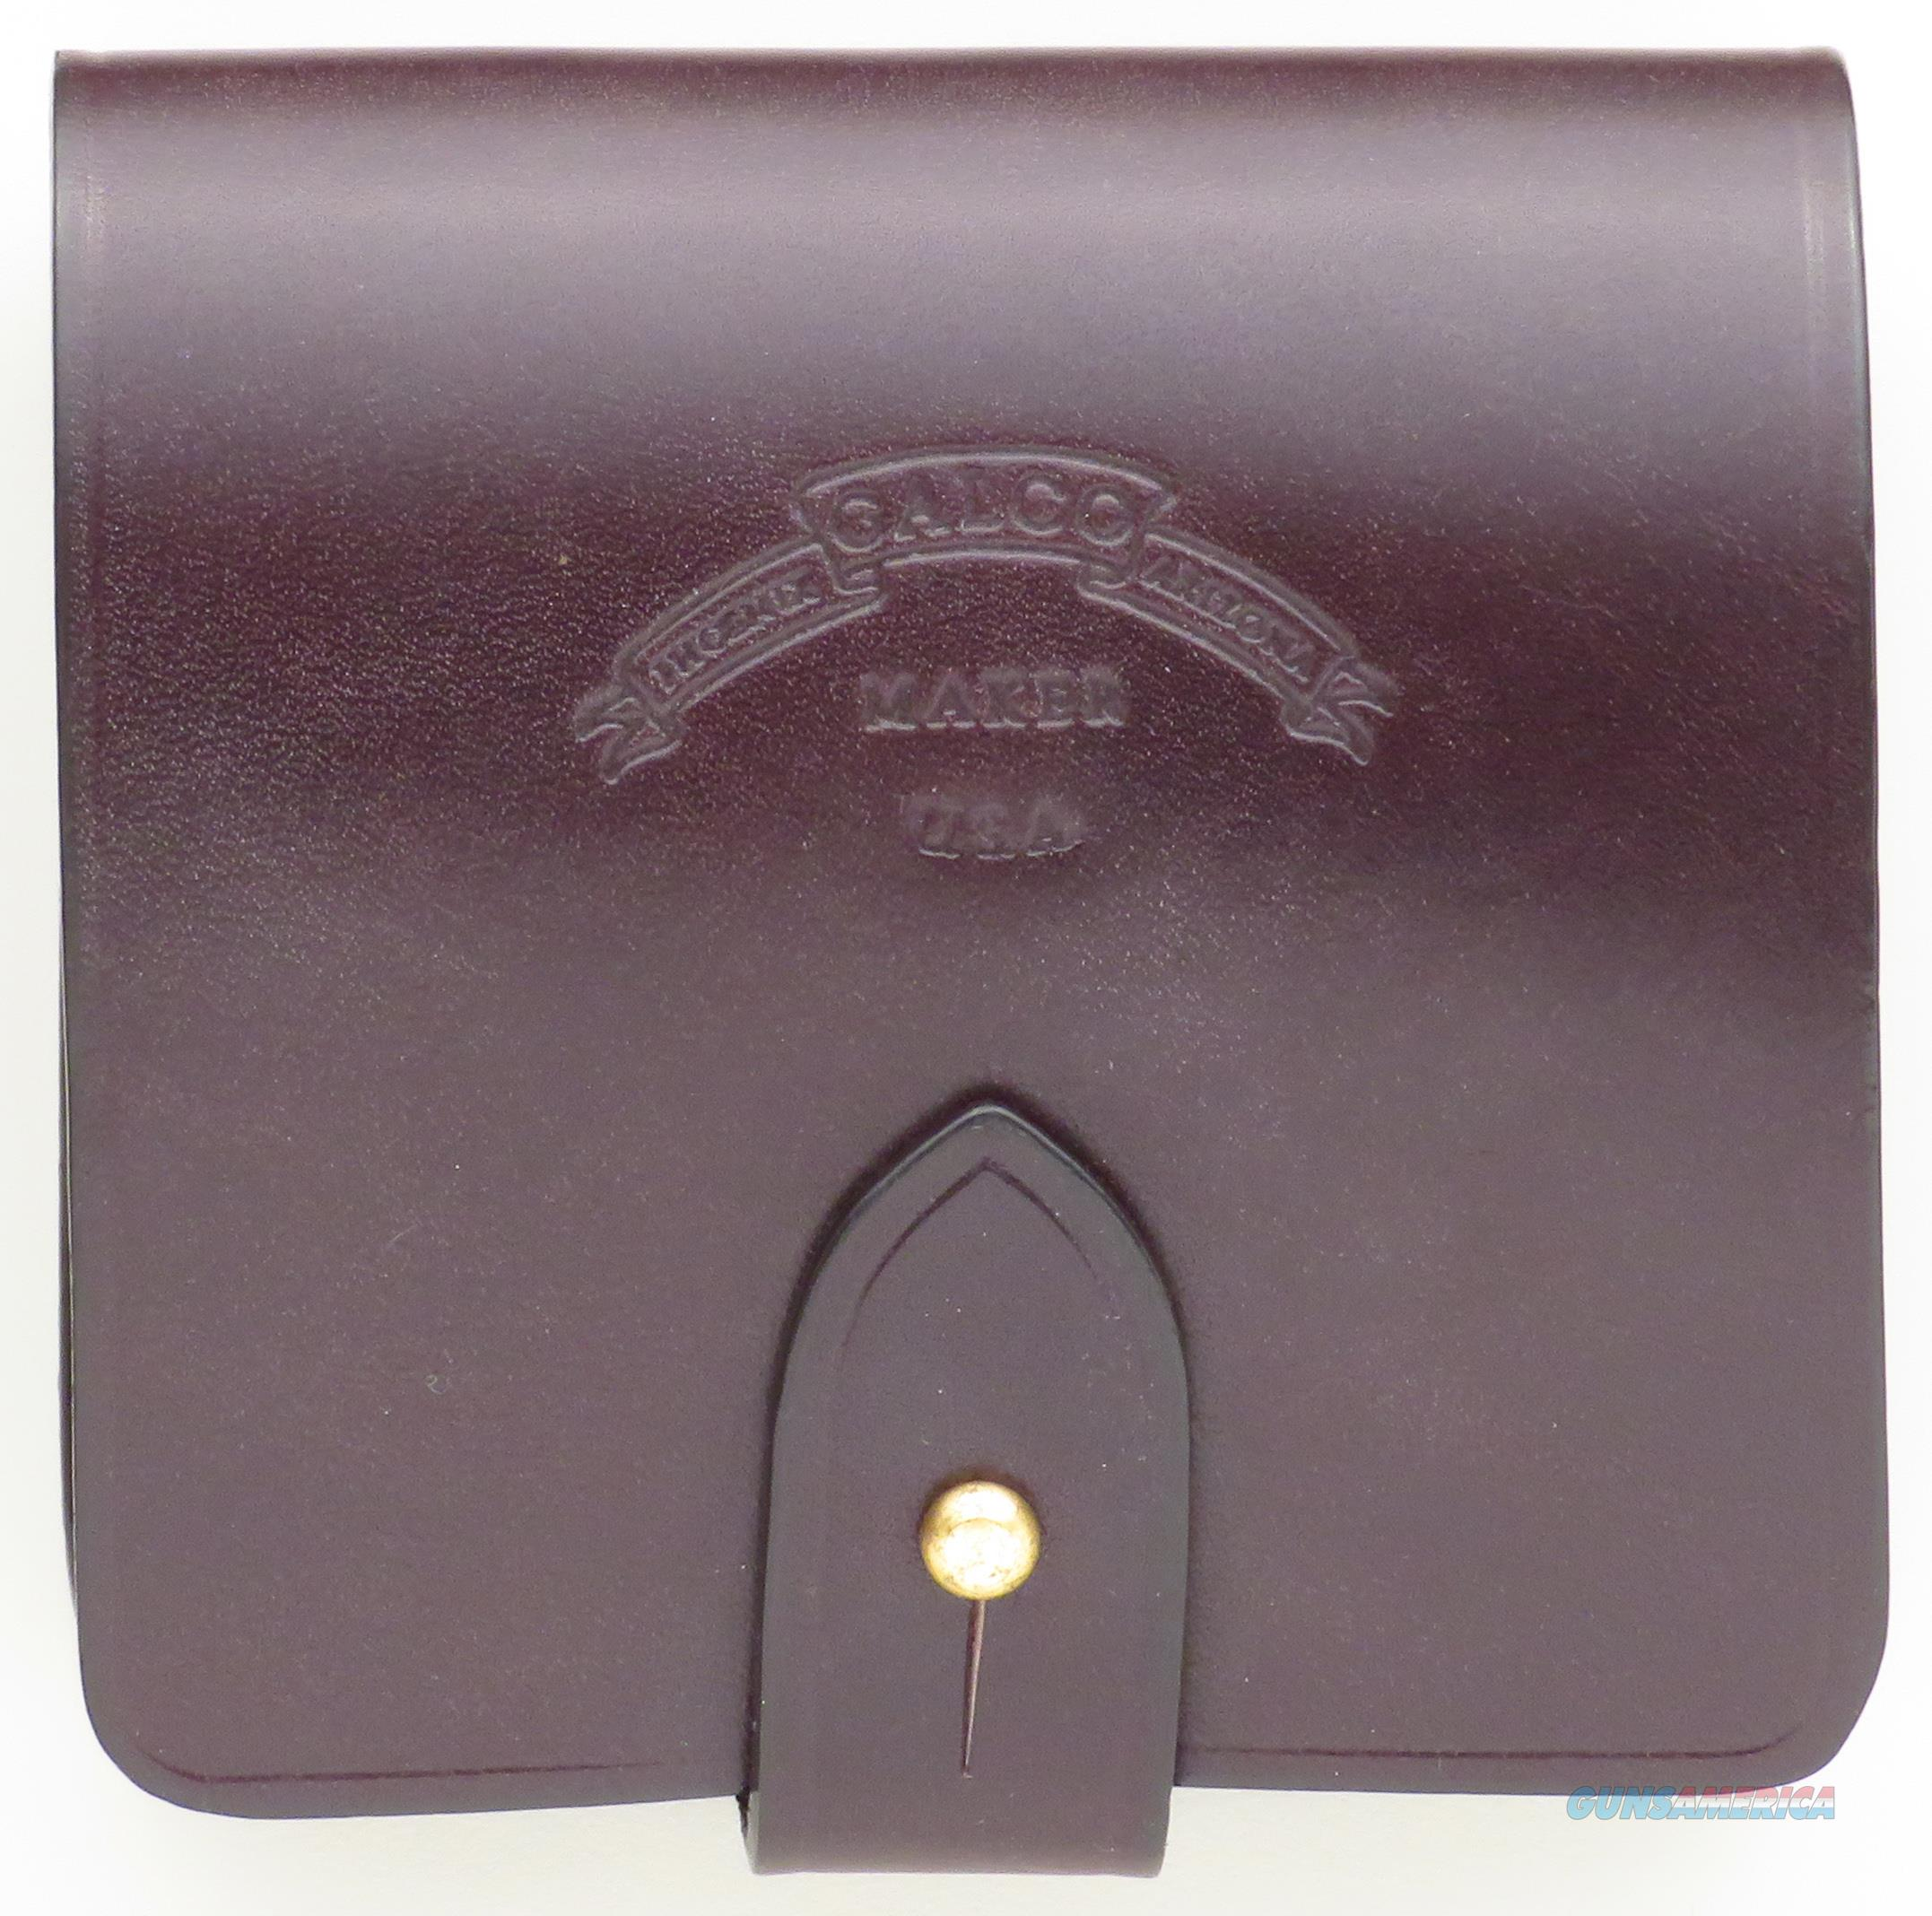 Galco Safari Five leather cartridge holder for large cartridges, new, dark brown  Non-Guns > Holsters and Gunleather > Other